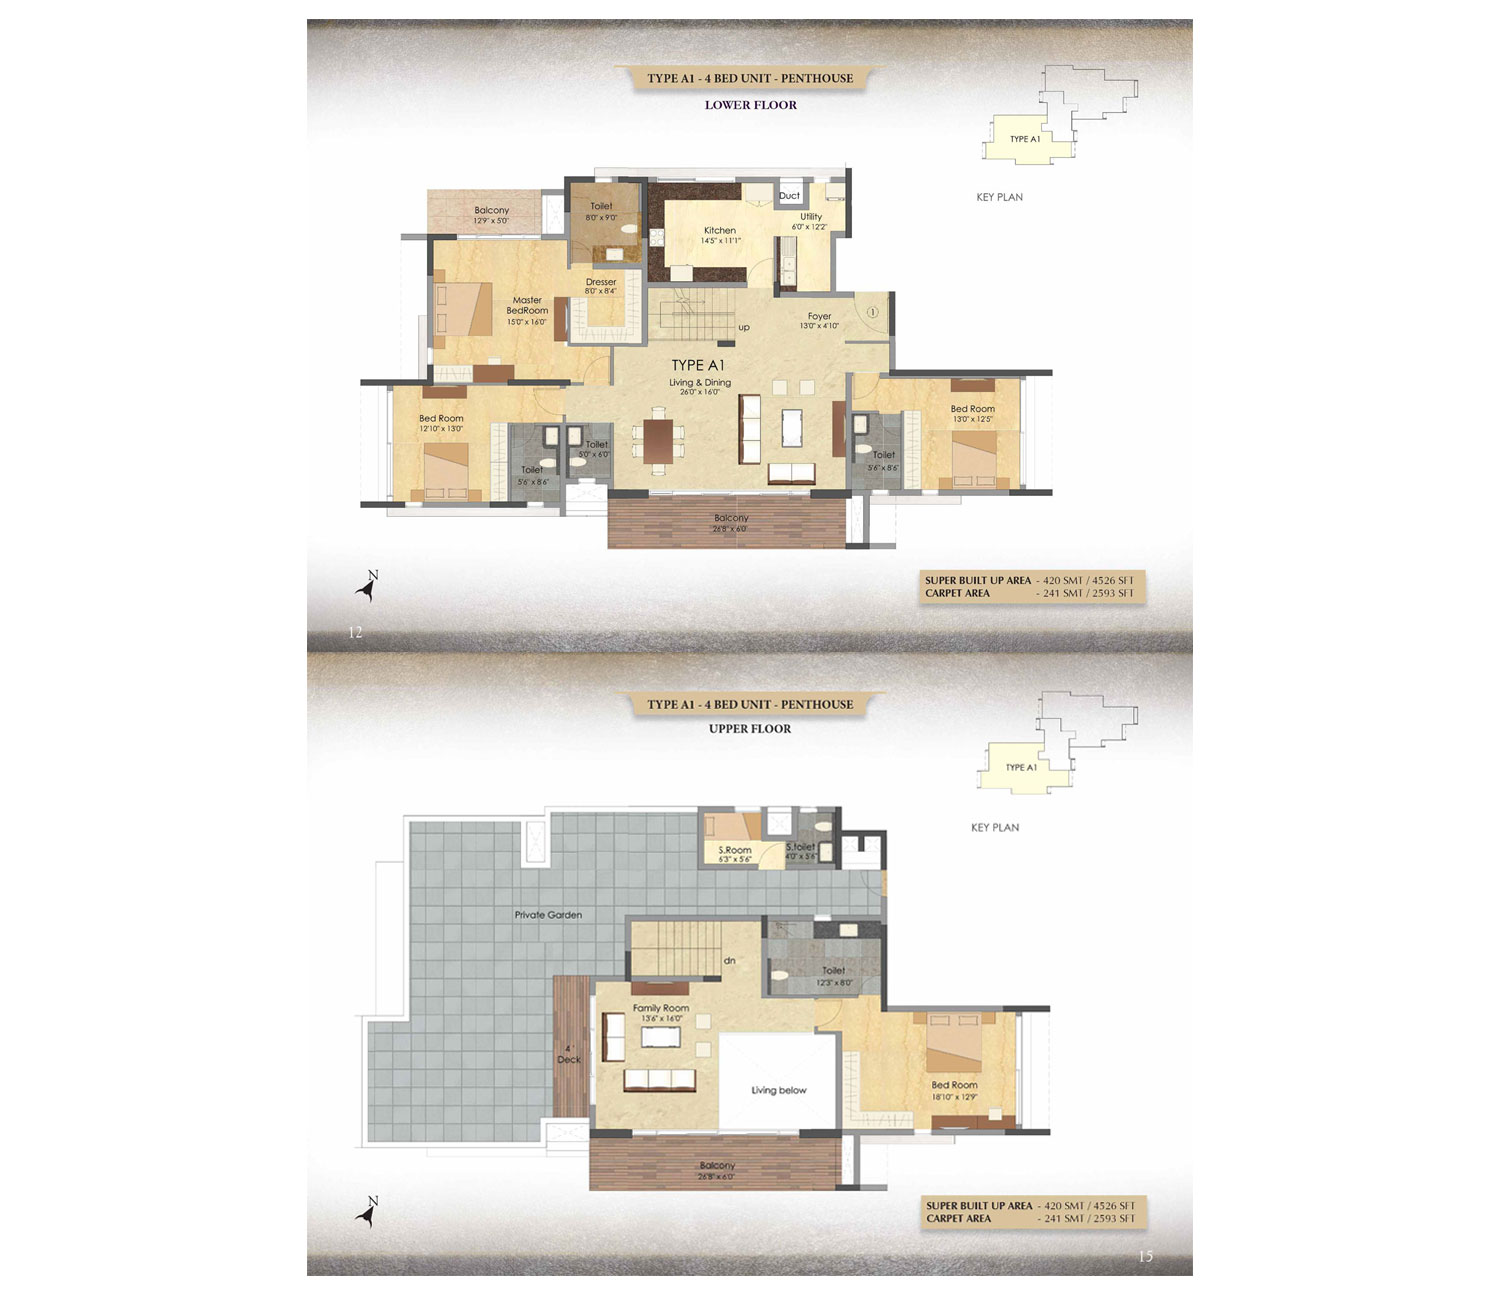 Type A1 - 4 BHK - Penthhouse - 4526 Sq Ft